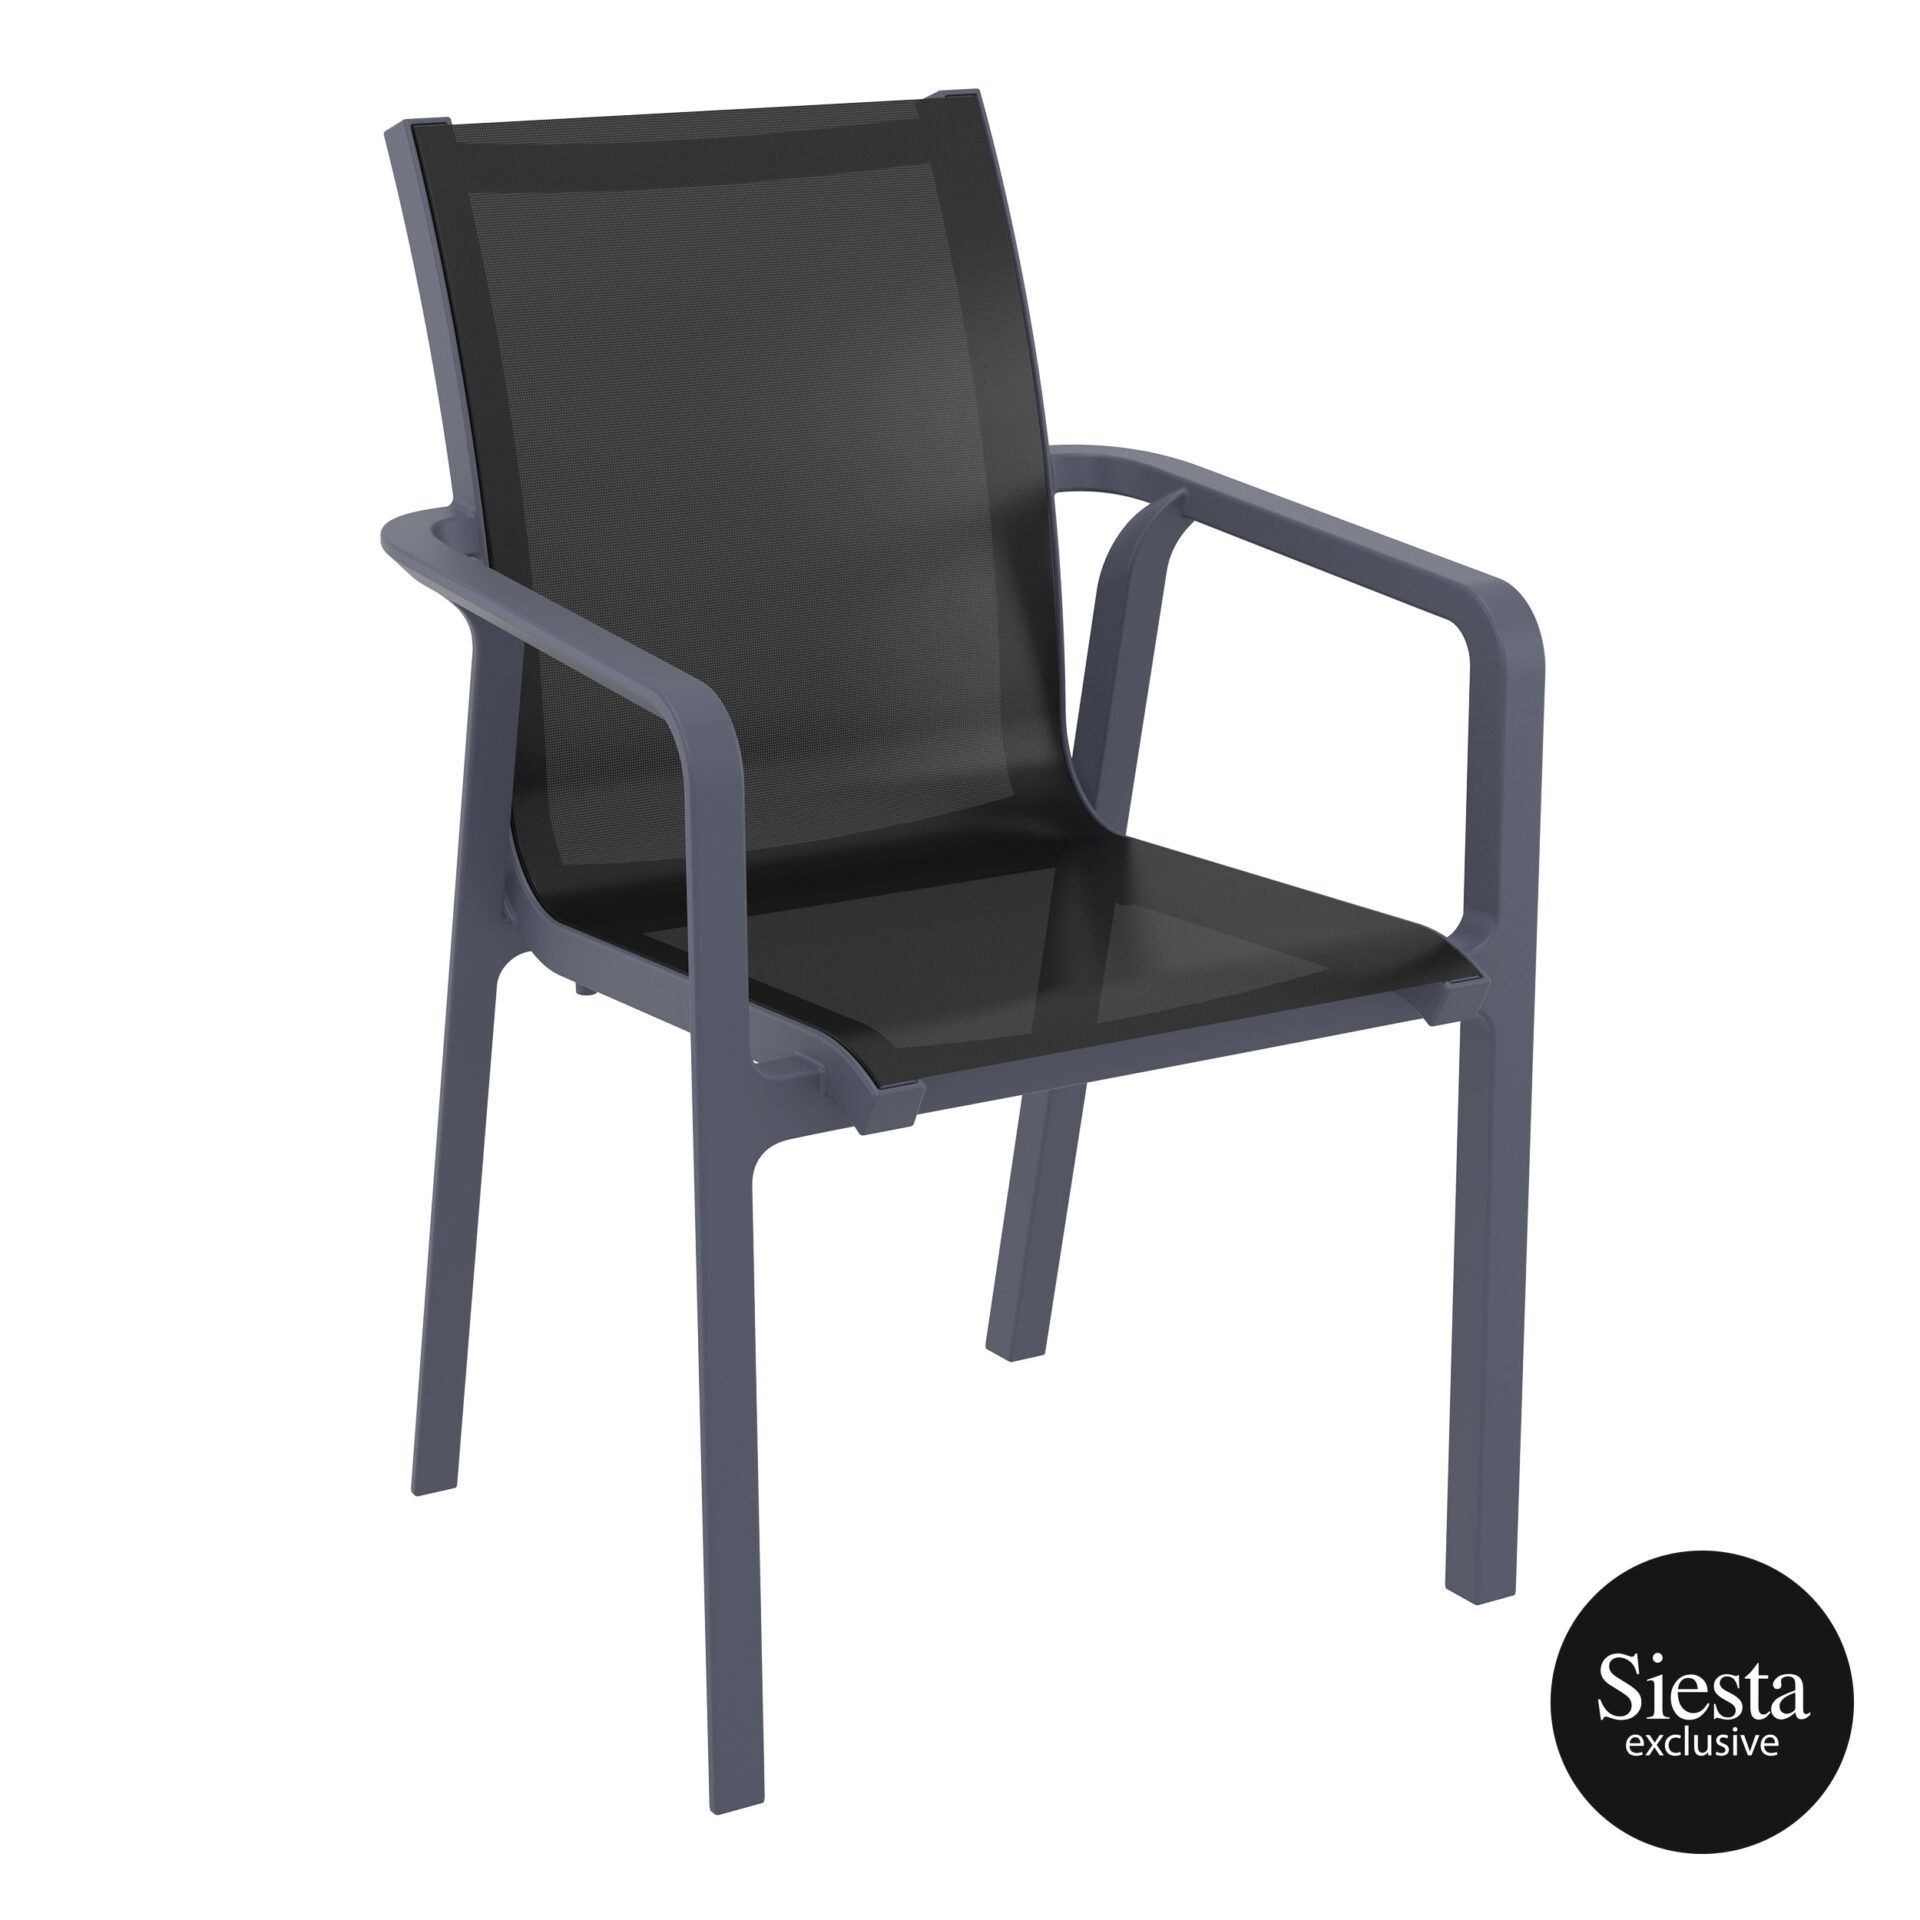 outdoor seating pacific armchair darkgrey black front side 2